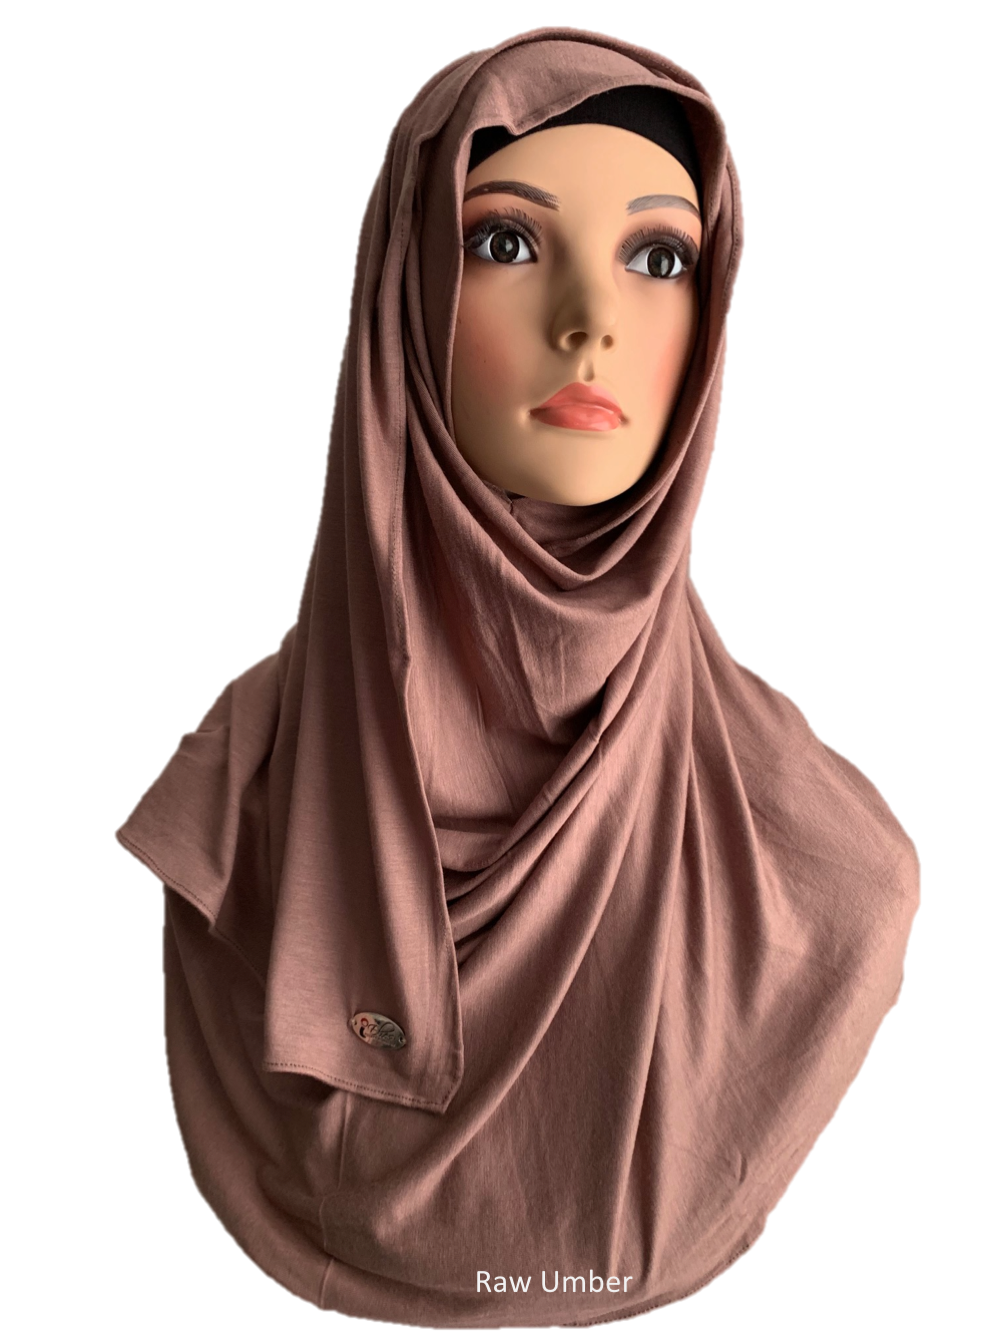 Raw Umber stretchy (COT) instant hijab SF